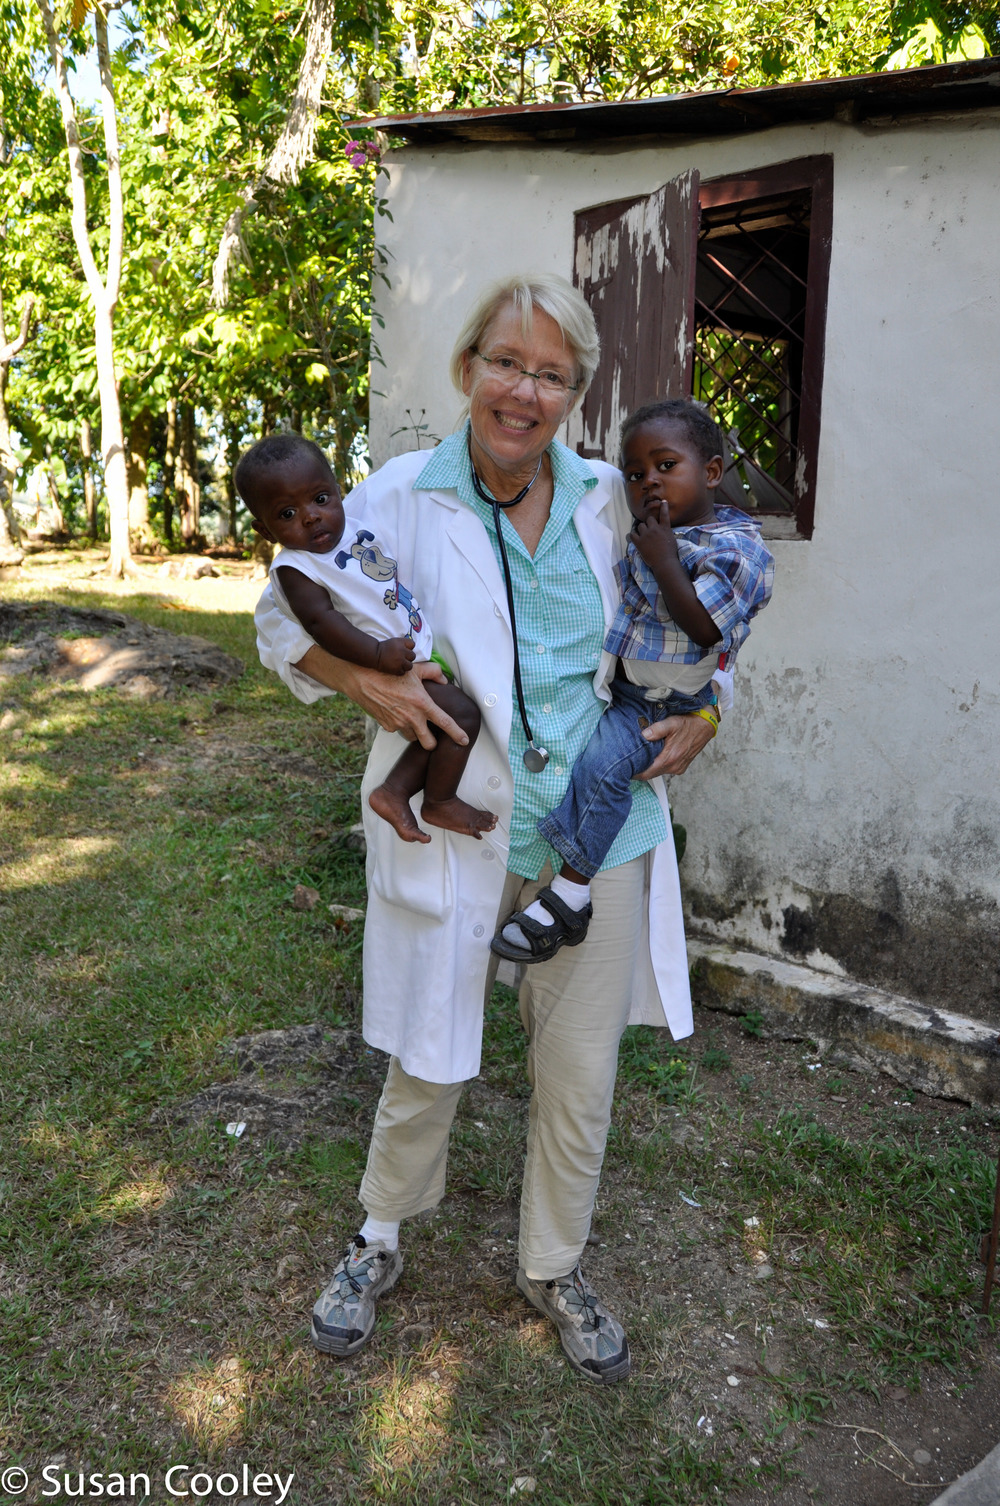 Susan with Haitian patients, 2013.